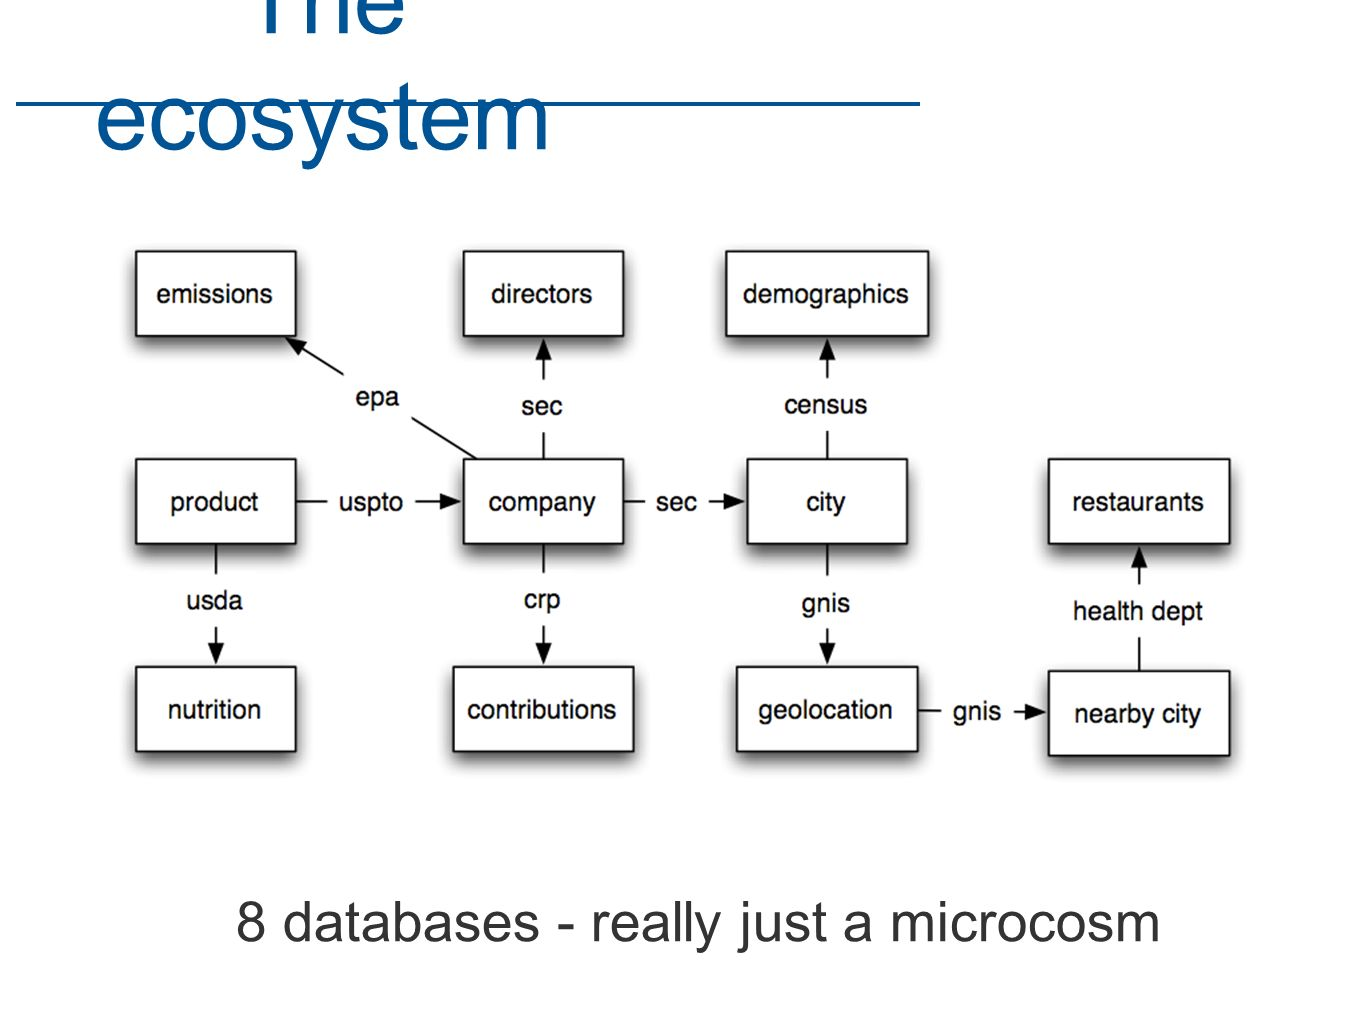 8 databases - really just a microcosm The ecosystem